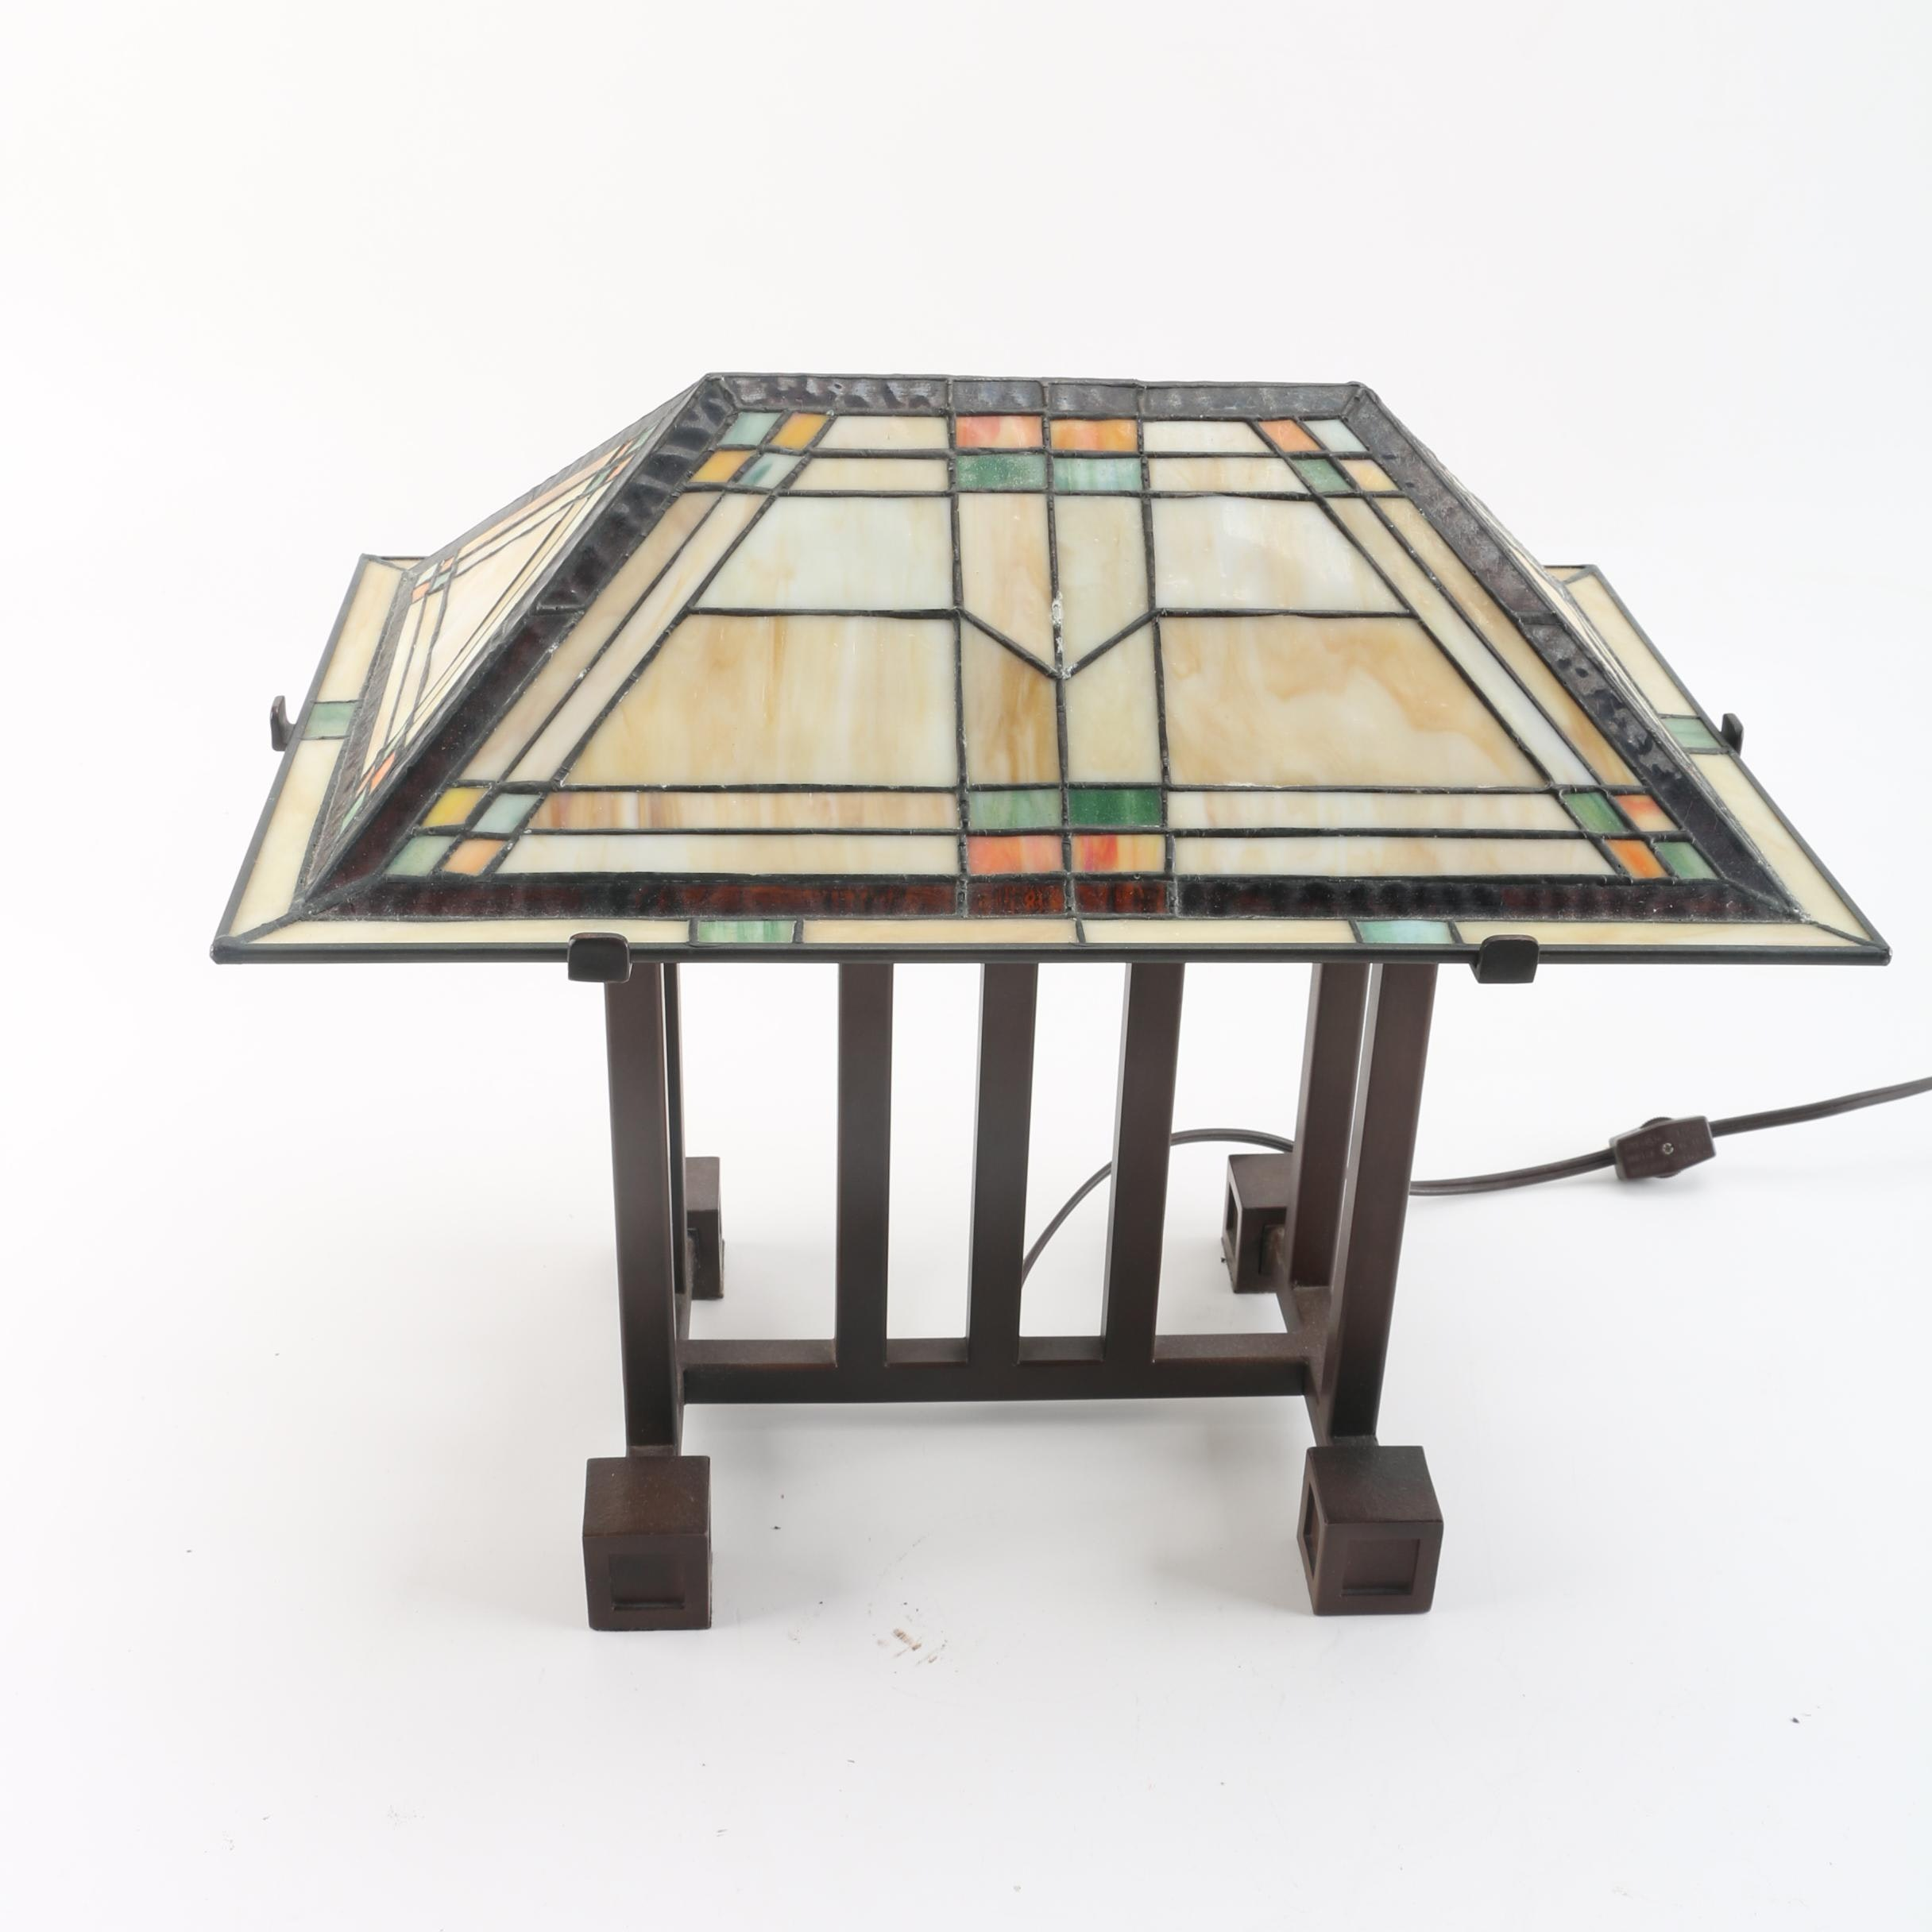 Contemporary Arts and Crafts Style Metal Table Lamp